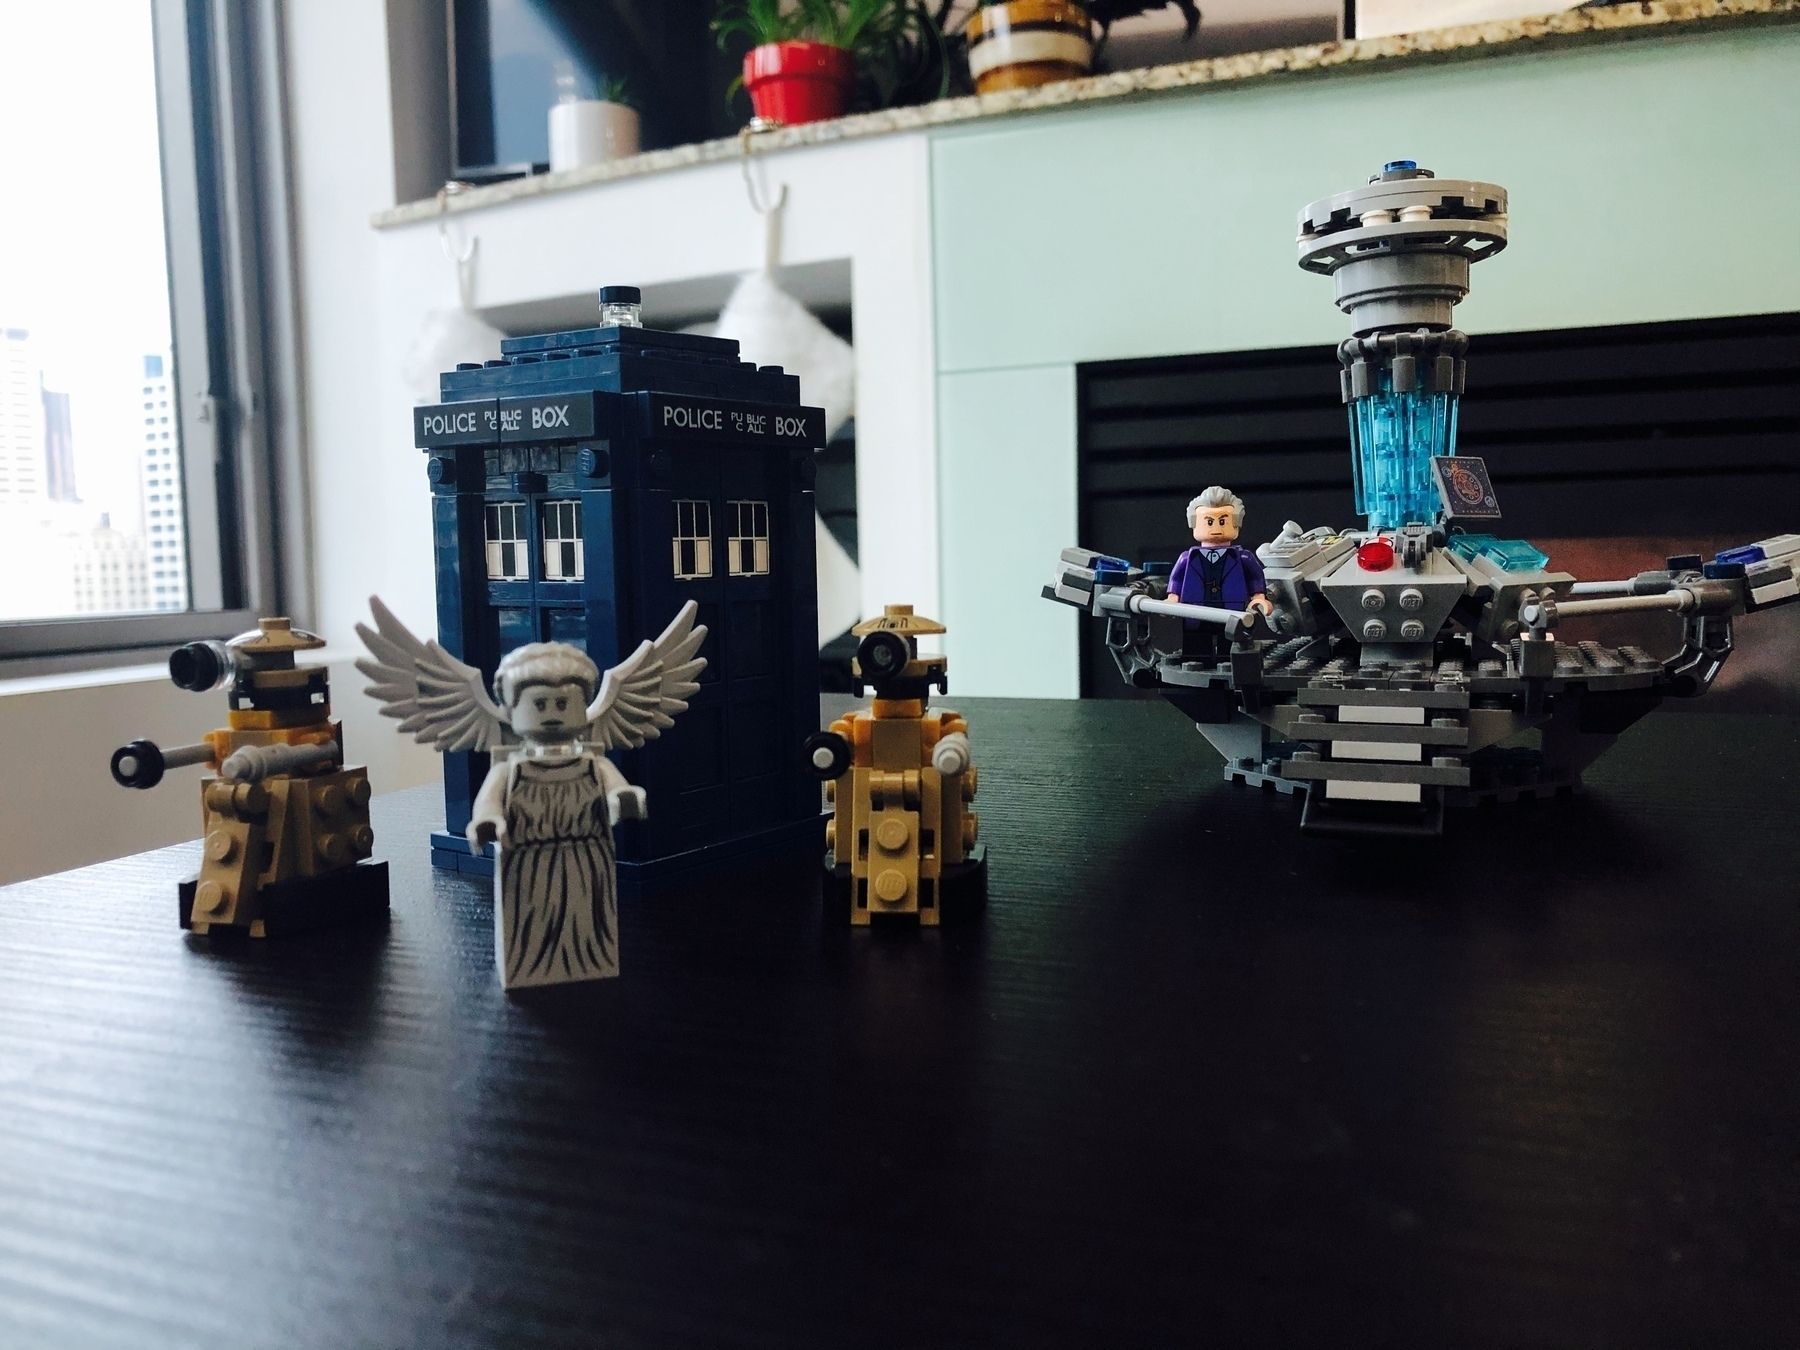 A LEGO tardis, daleks, and a weeping Angel minifig